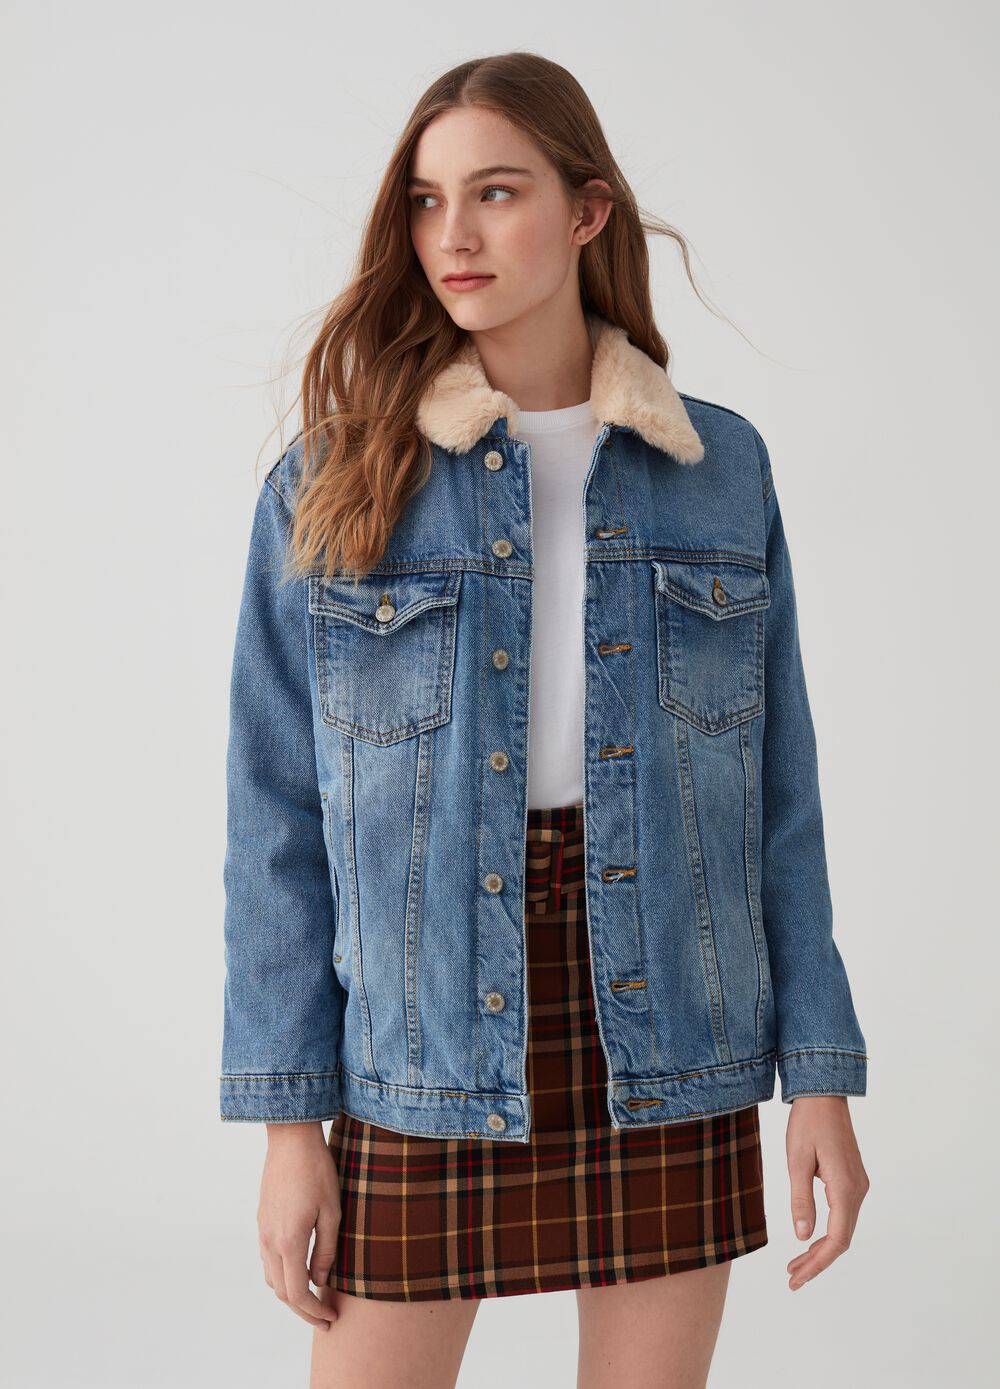 Over-fit denim jacket with padding